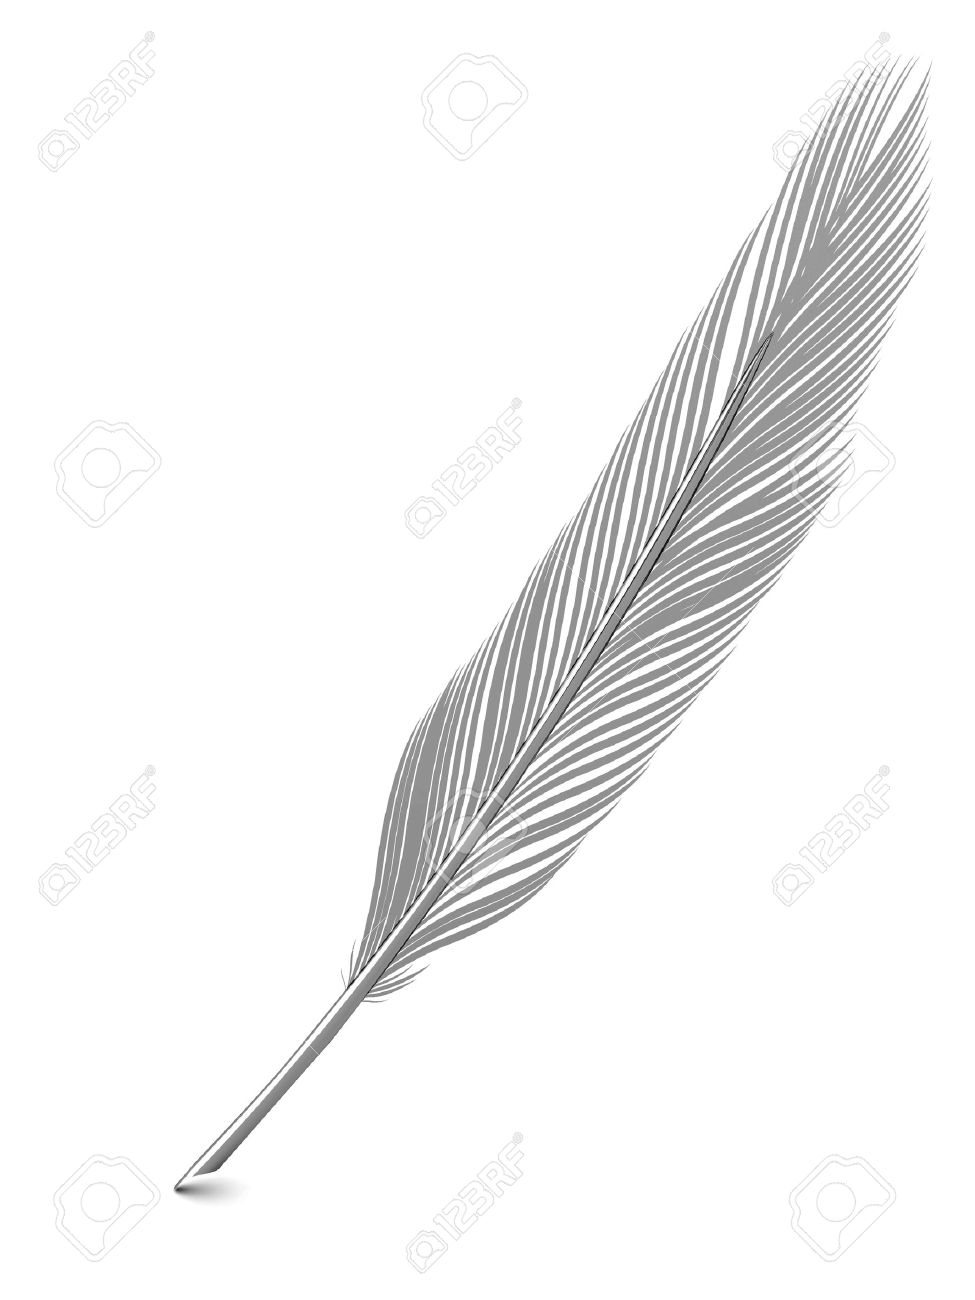 Silver Or Platinum Feather Quill Over White Background. High ...